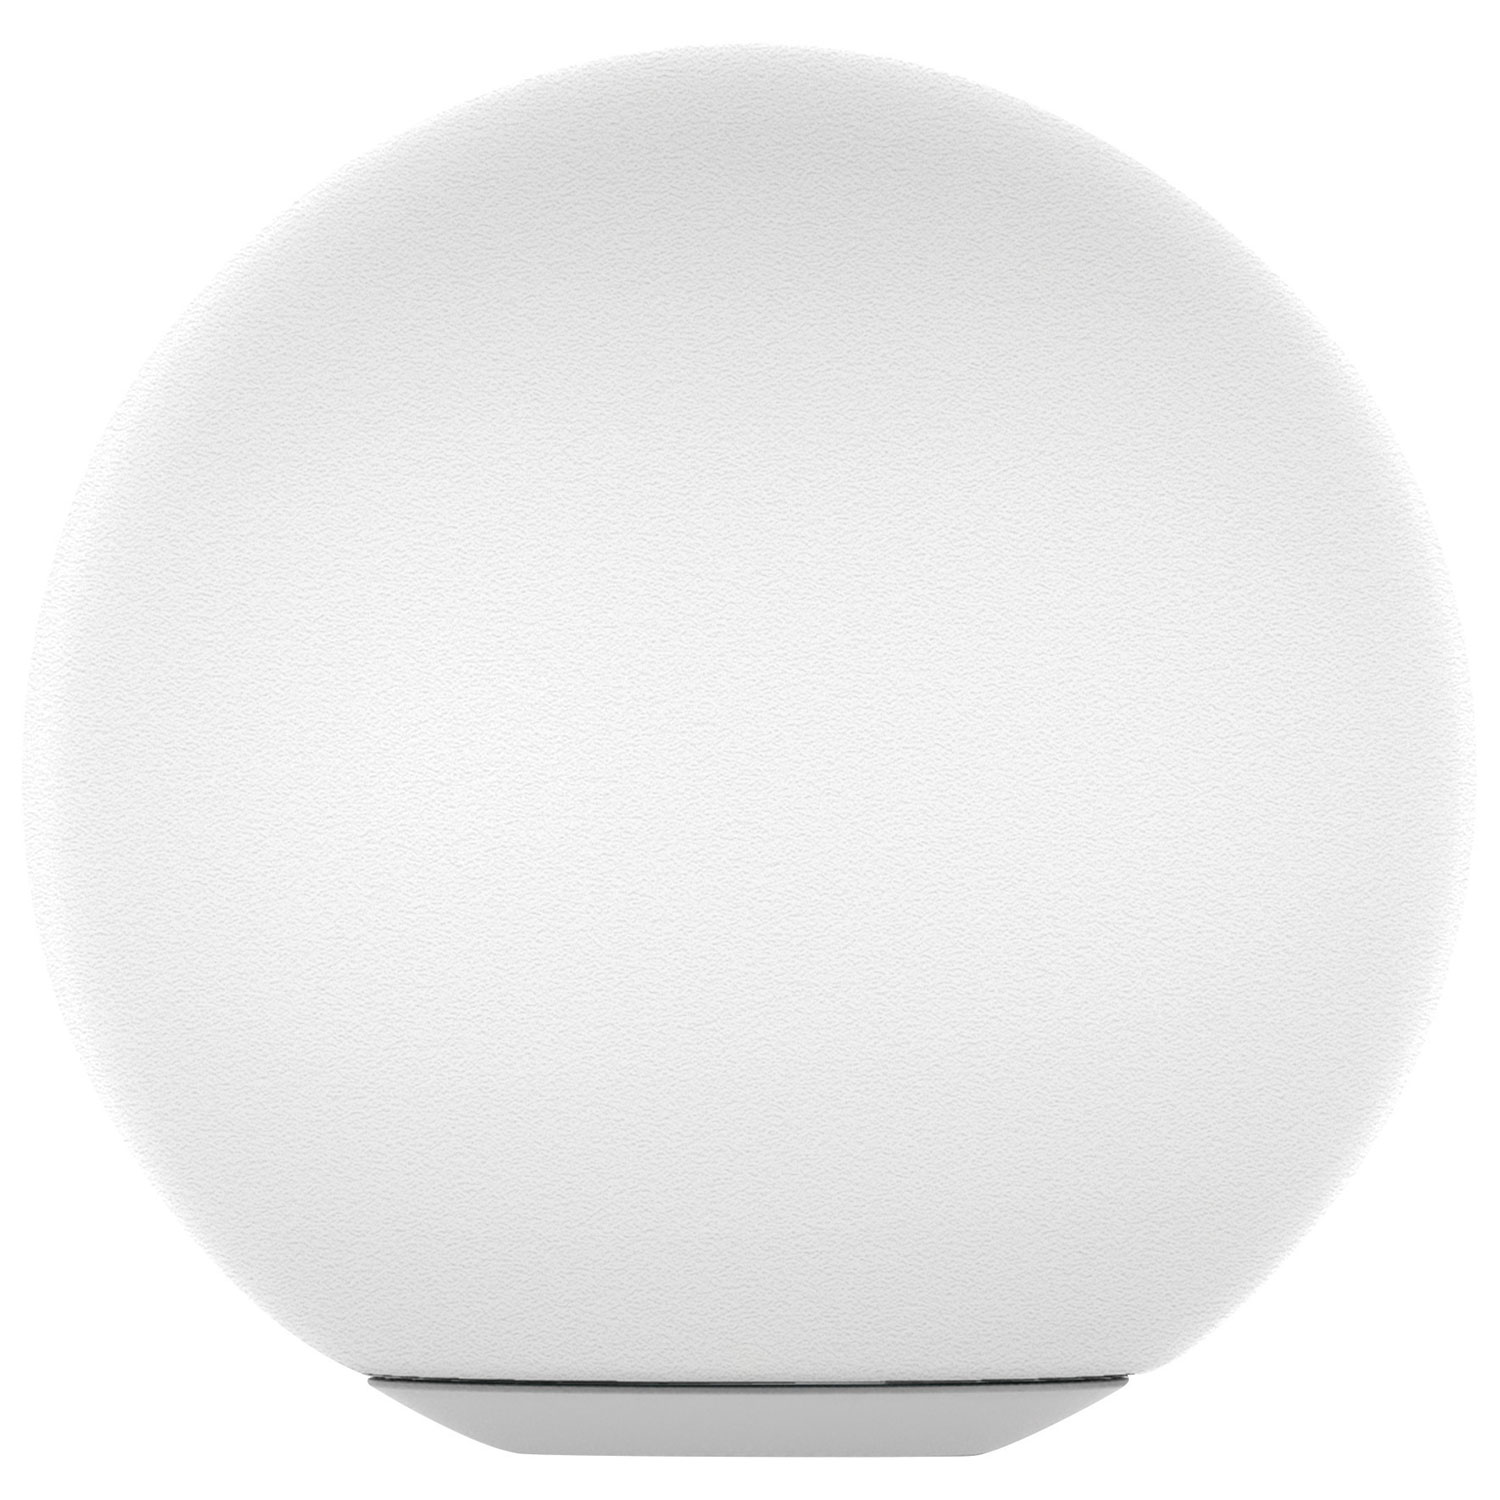 MIPOW PLAYBULB Sphere Smart LED Lamp - Multi-colour - Only at Best ...